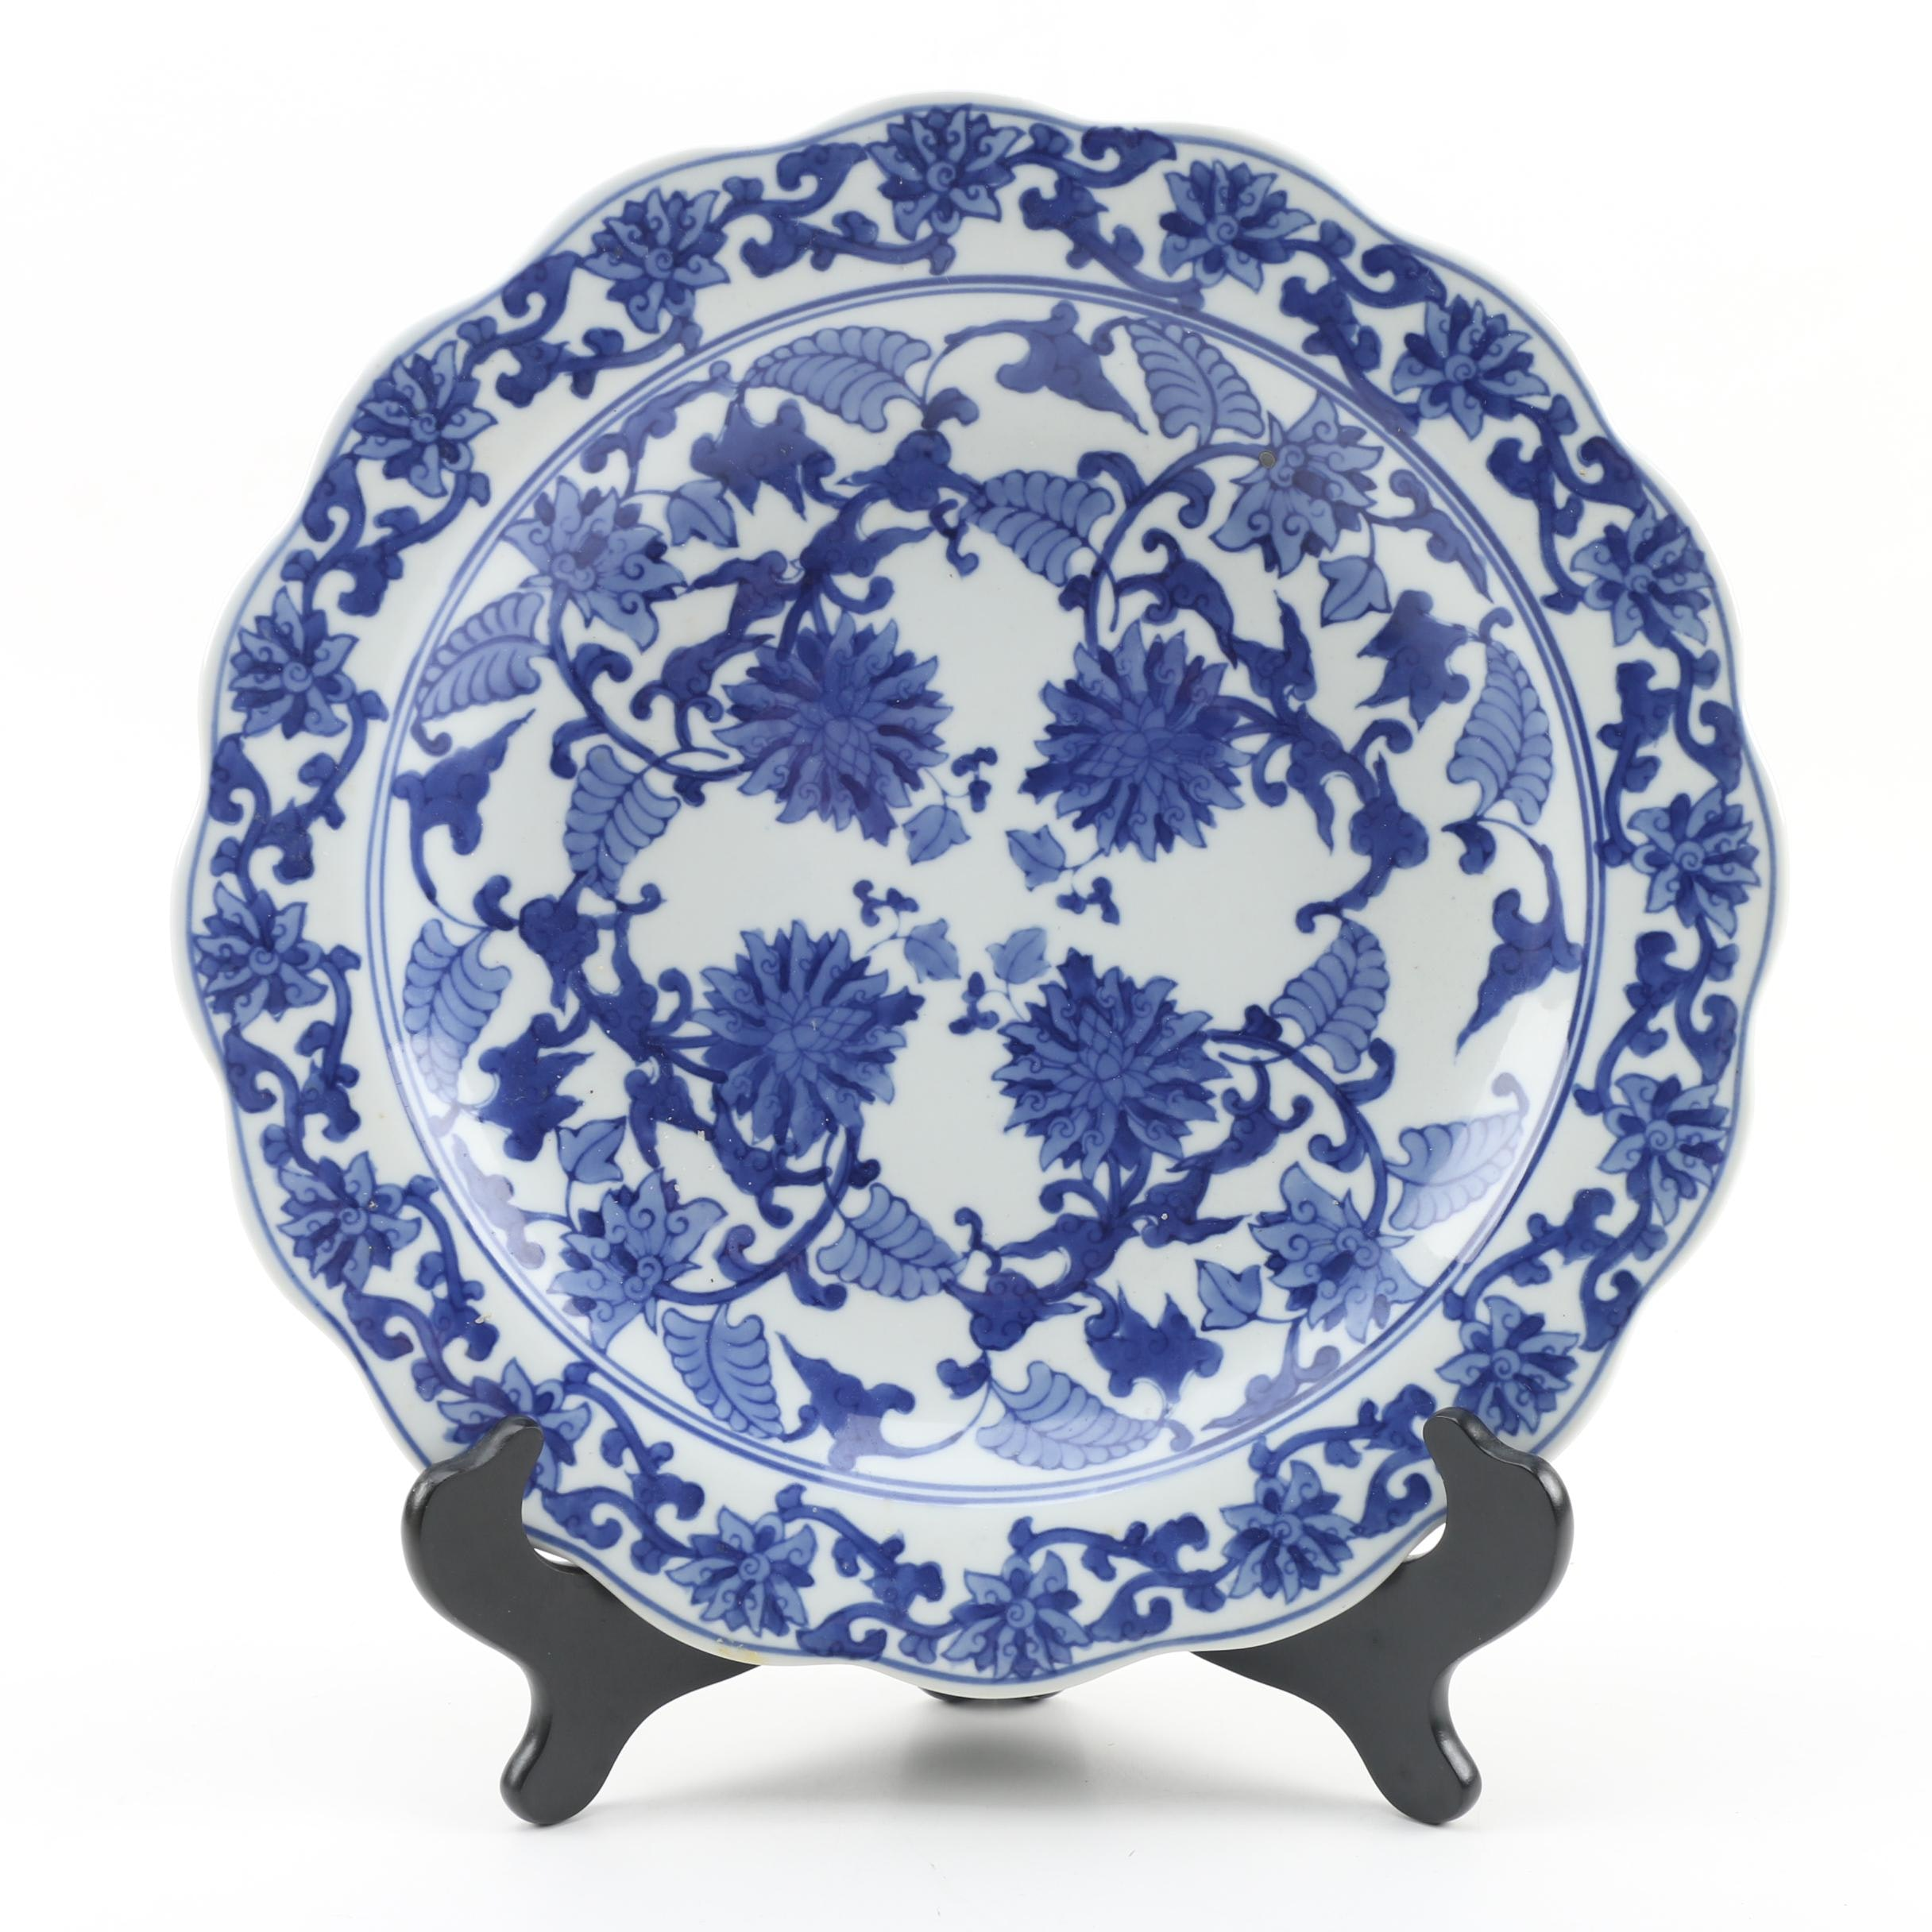 Chinese Blue and White Floral Ceramic Platter on Stand, 1960s